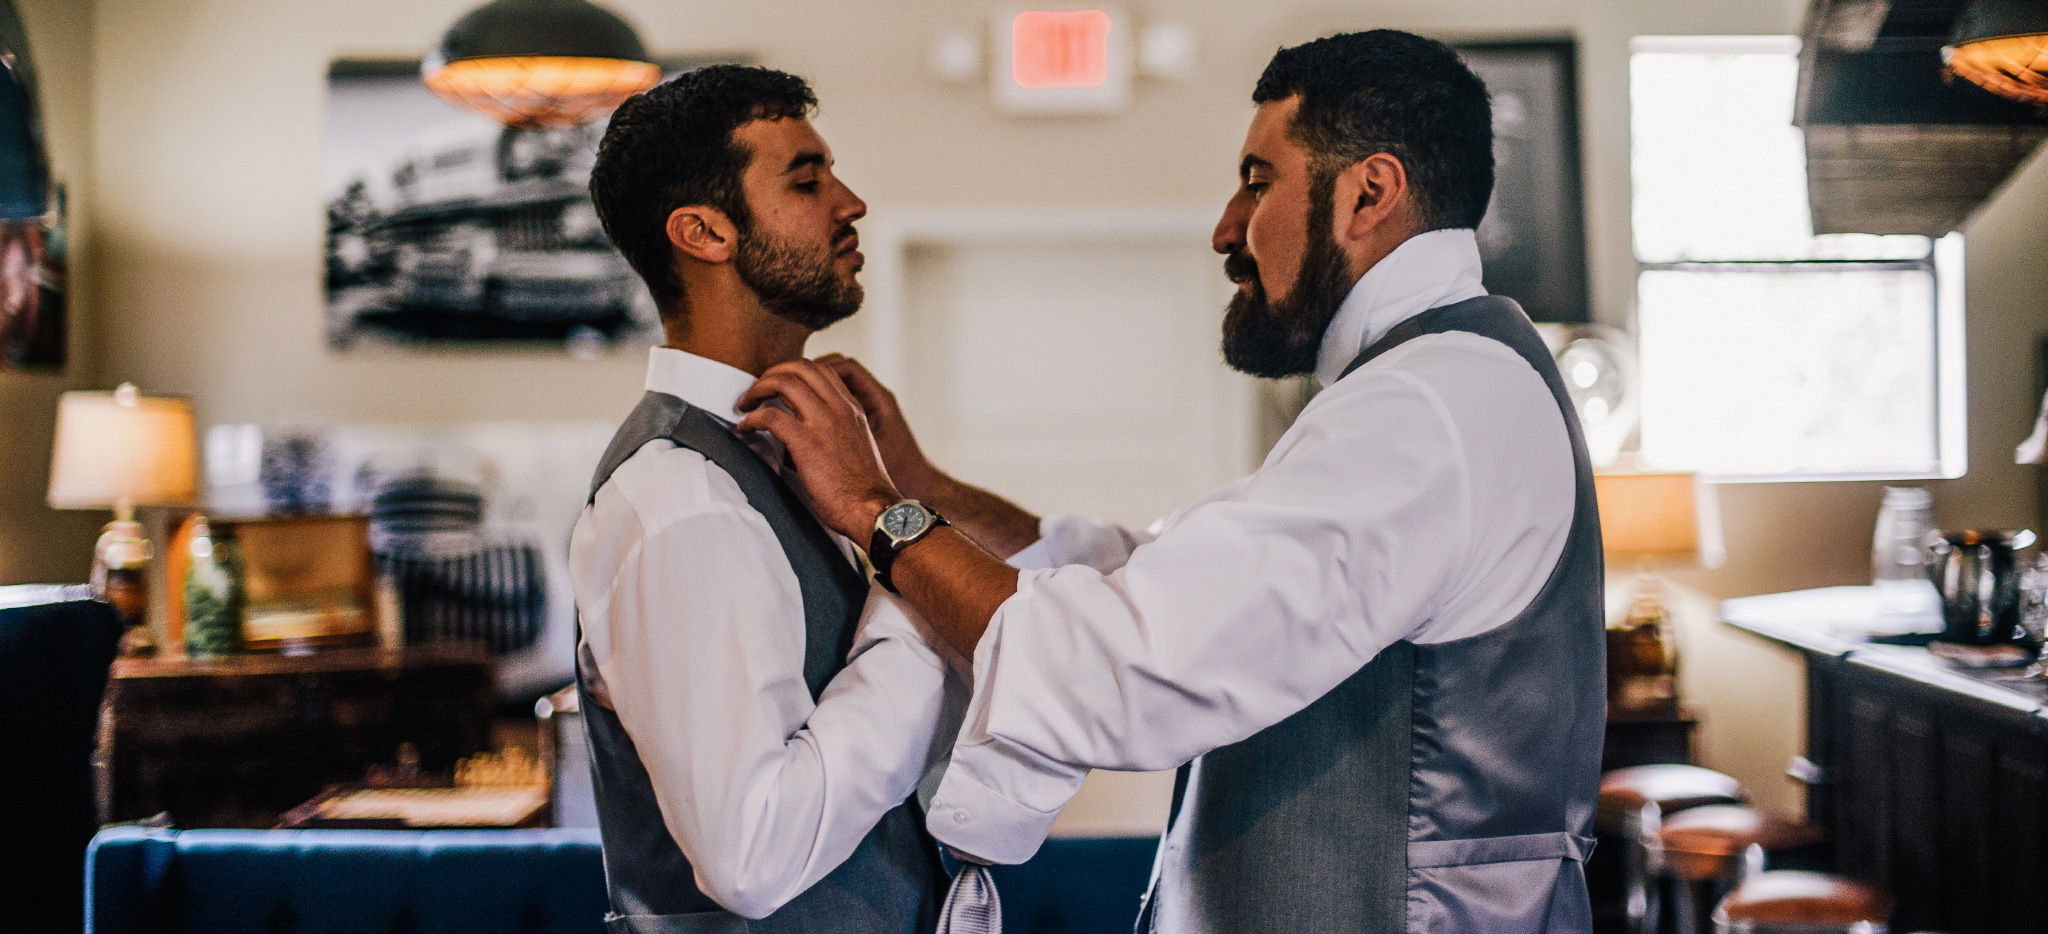 san diego wedding   photographer | 2 men with grey vests helping each other fix up